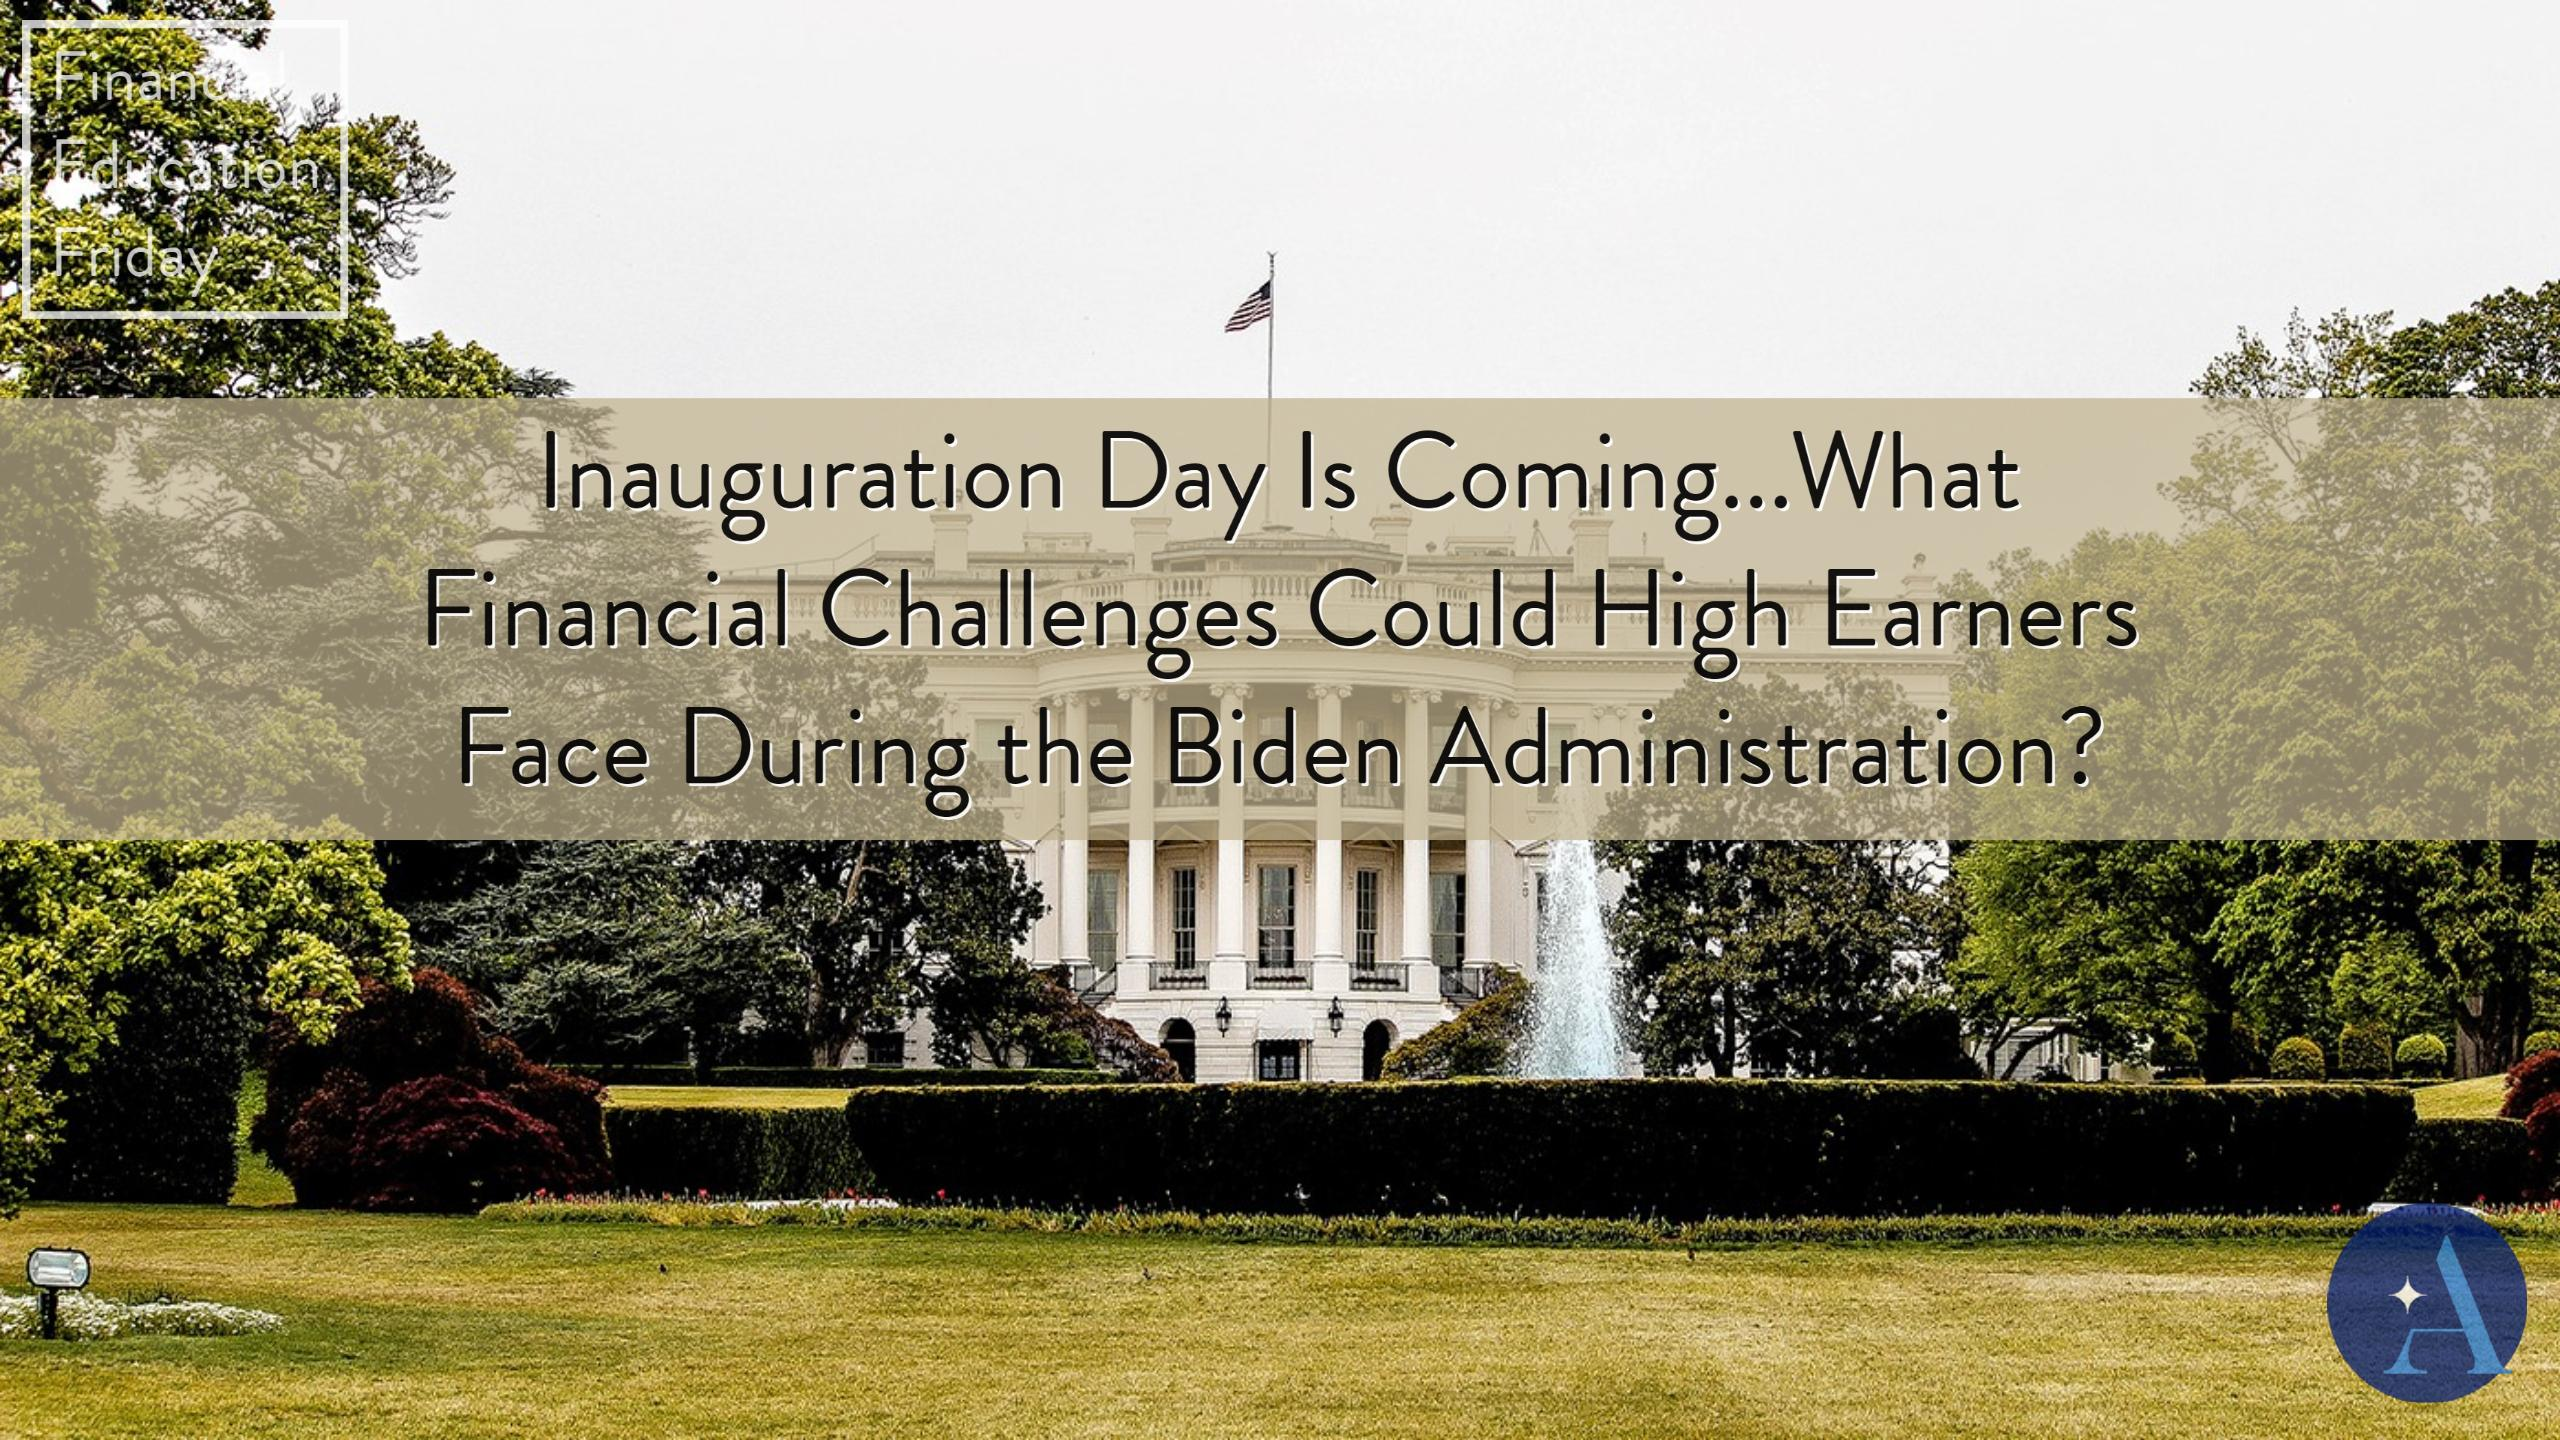 FinEdFriday: Inauguration Day Is Coming...What Financial Challenges Could High Earners Face During the Biden Administration? Thumbnail